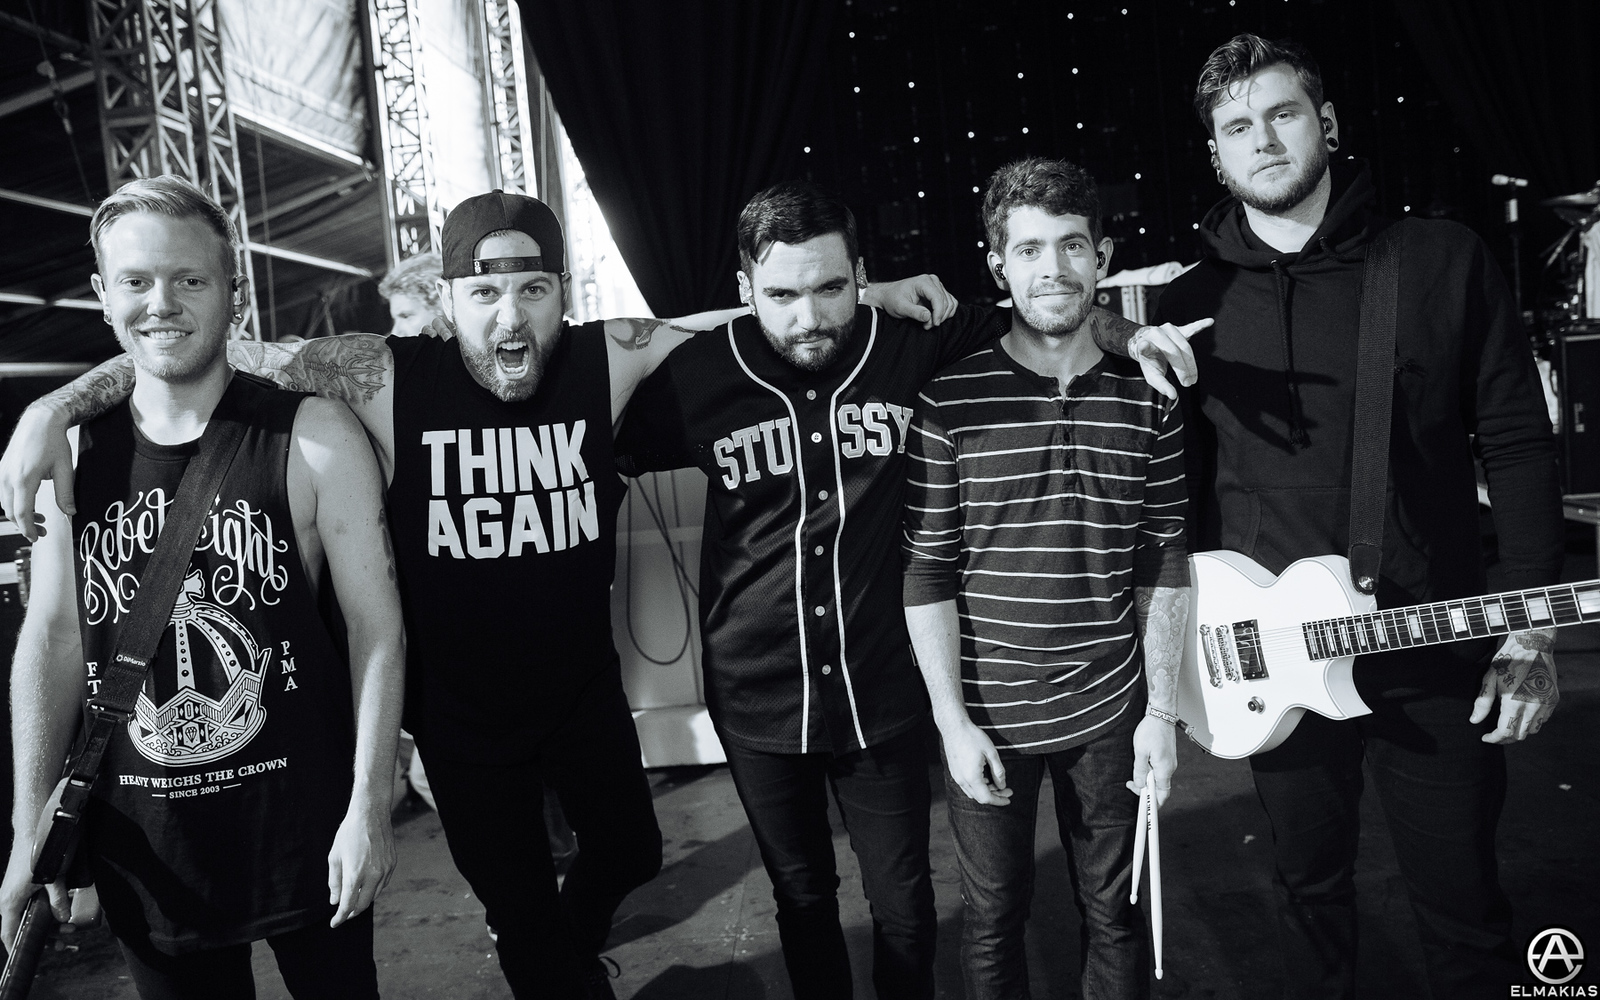 A Day To Remember at Download Festival in Leicestershire, England - European Festivals